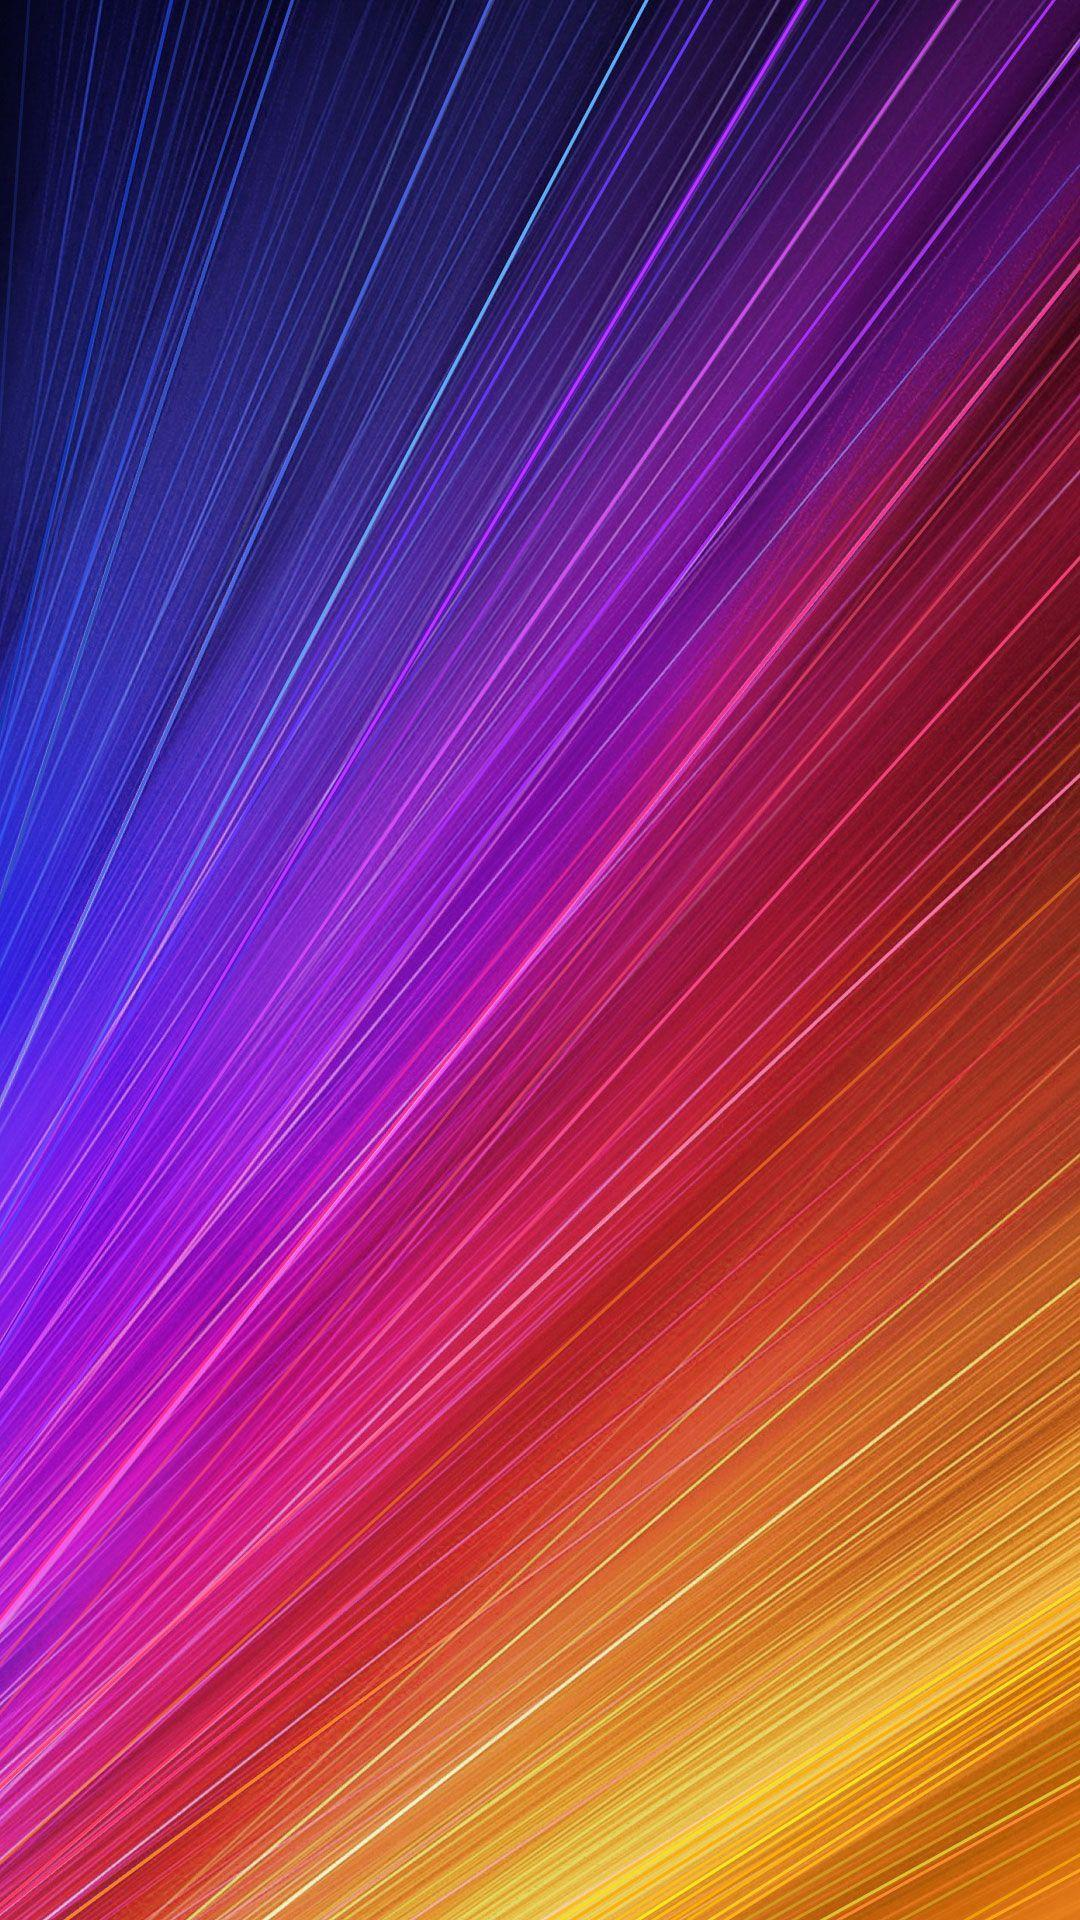 Xiaomi Wallpapers Wallpaper Cave HD Wallpapers Download Free Images Wallpaper [1000image.com]